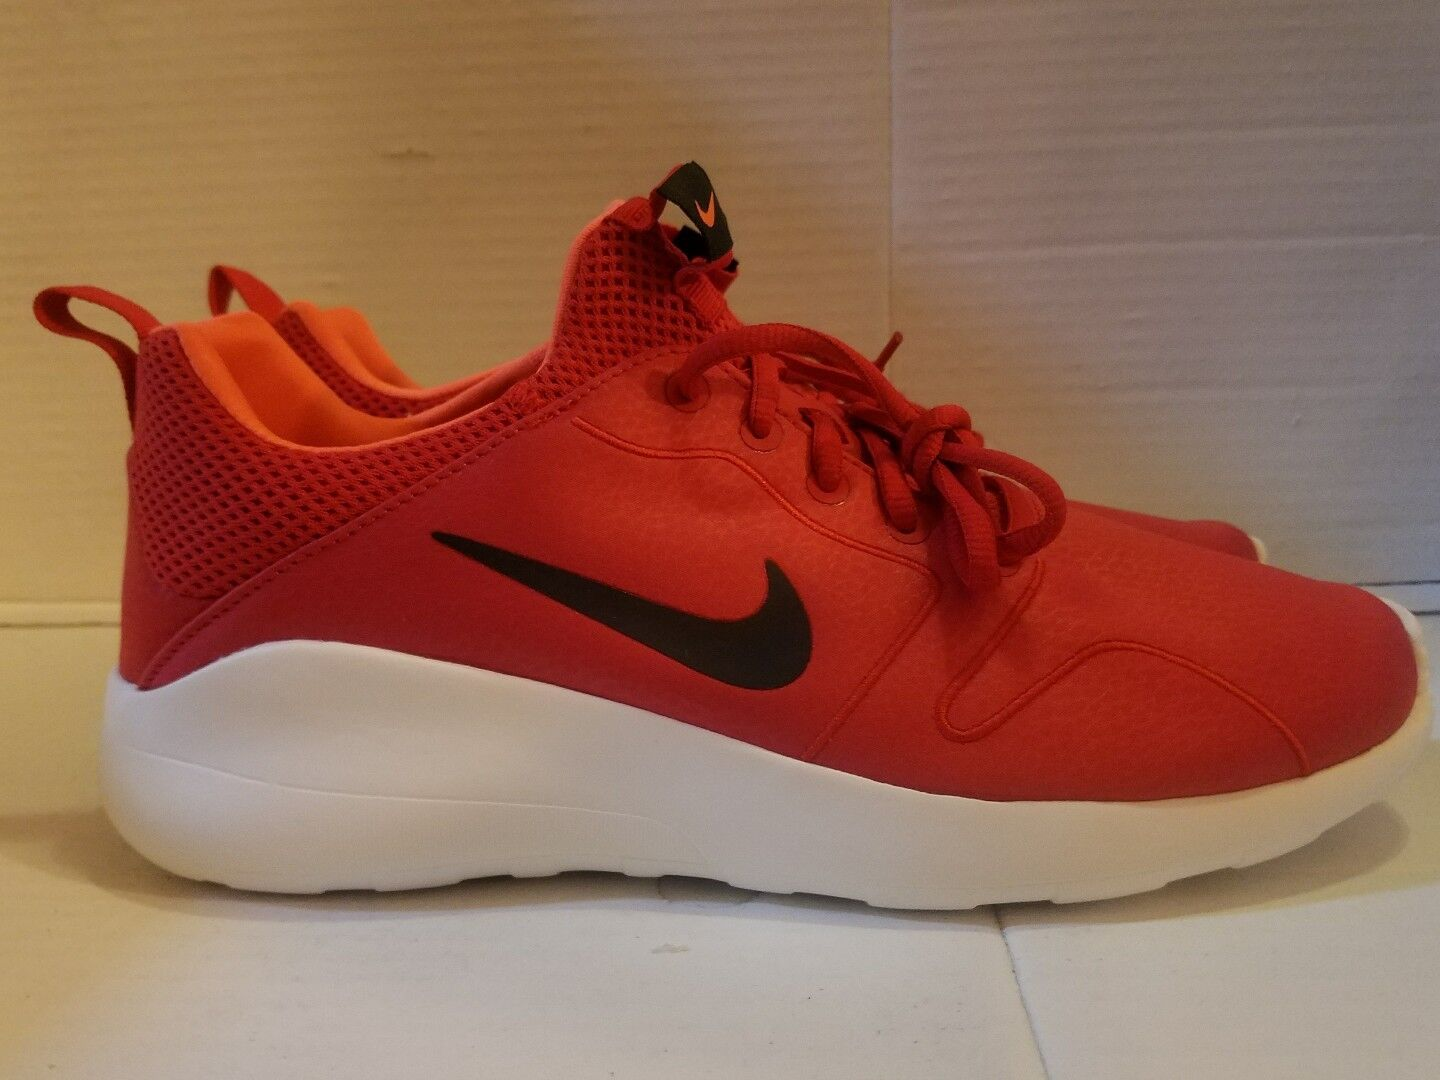 NIKE KAISHI 2.0 SE, Red, Black, White,  MISMATCH SZ R is11, L is 11.5 844838-602